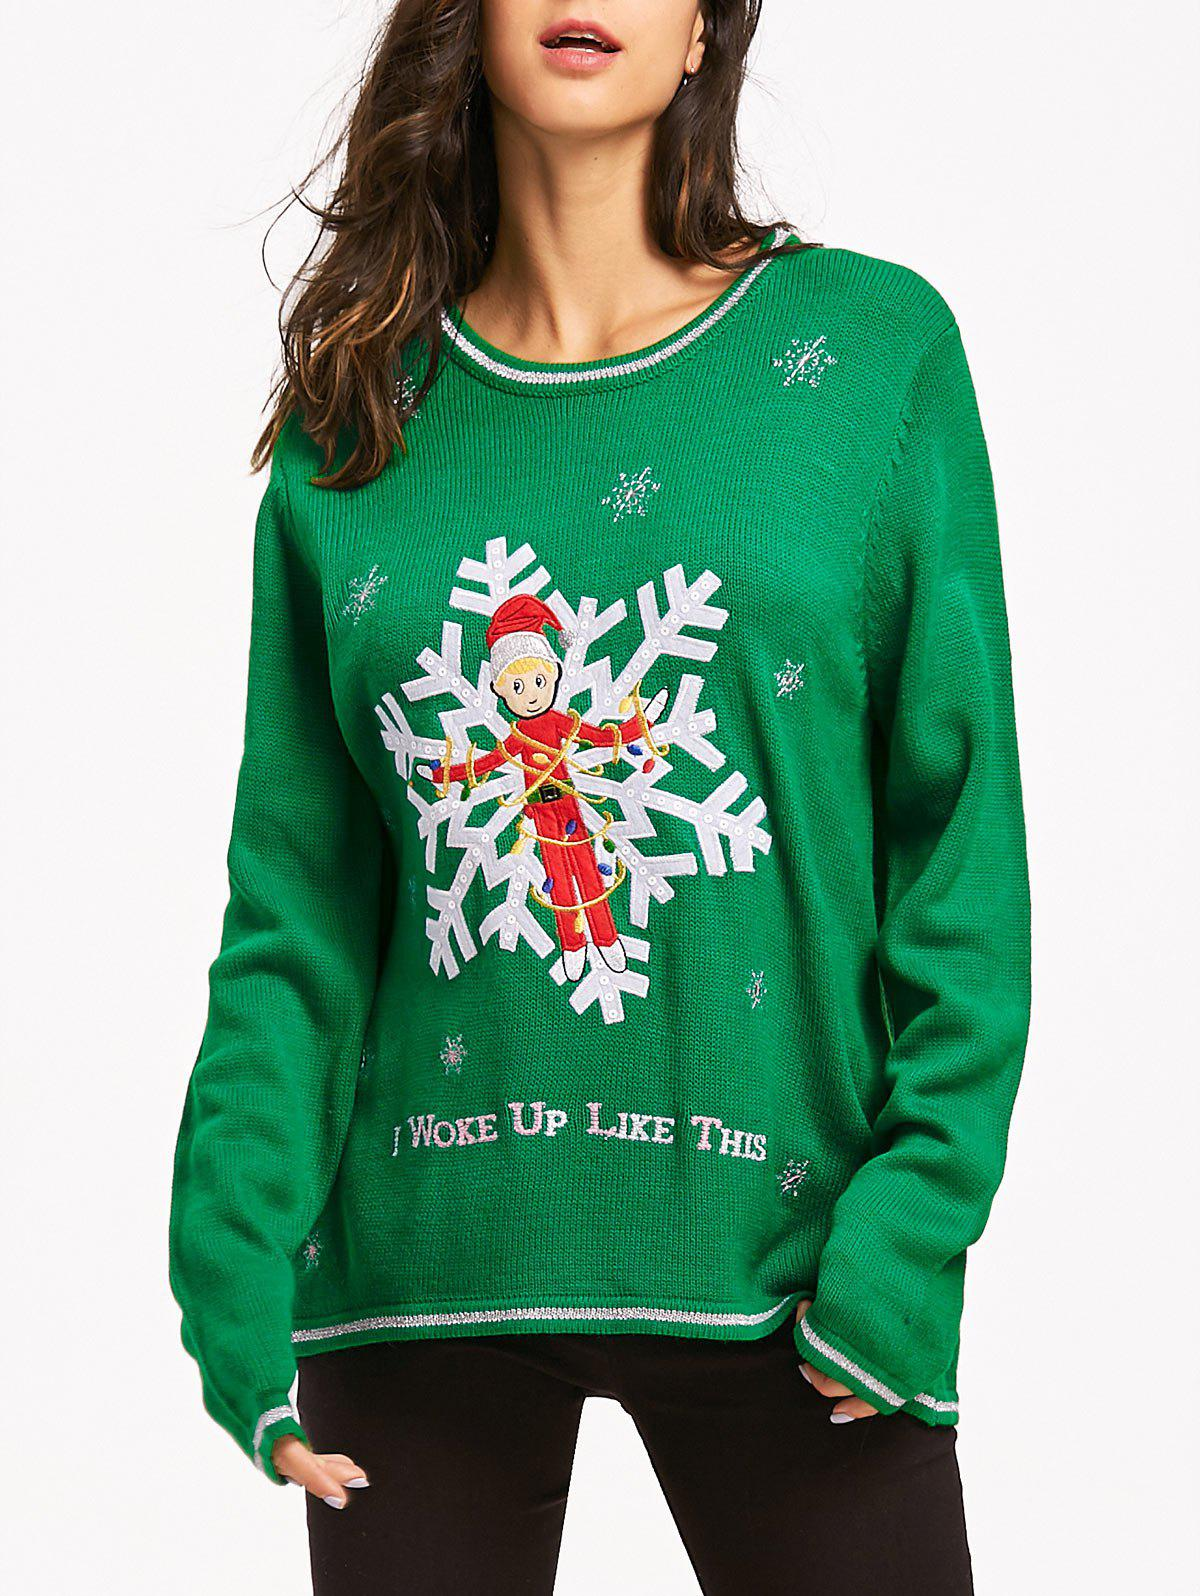 Christmas Snowflake Jacquard Letter Embroidery SweaterWOMEN<br><br>Size: ONE SIZE; Color: GREEN; Type: Pullovers; Material: Acrylic; Sleeve Length: Full; Collar: Round Neck; Style: Fashion; Pattern Type: Letter; Embellishment: Embroidery; Season: Fall,Spring,Winter; Weight: 0.4650kg; Package Contents: 1 x Sweater;